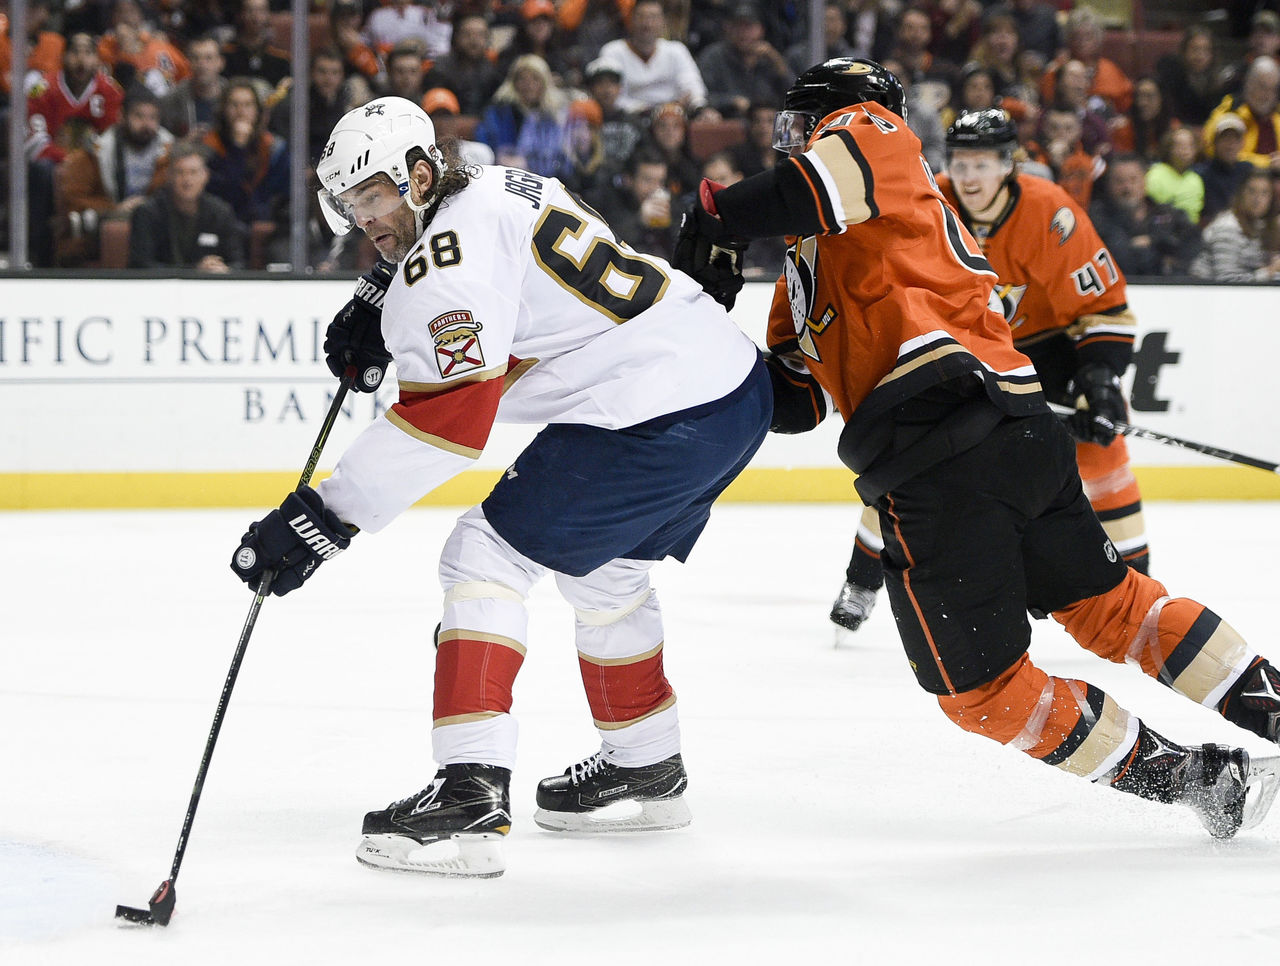 Cropped 2017 02 18t045325z 1486346373 nocid rtrmadp 3 nhl florida panthers at anaheim ducks